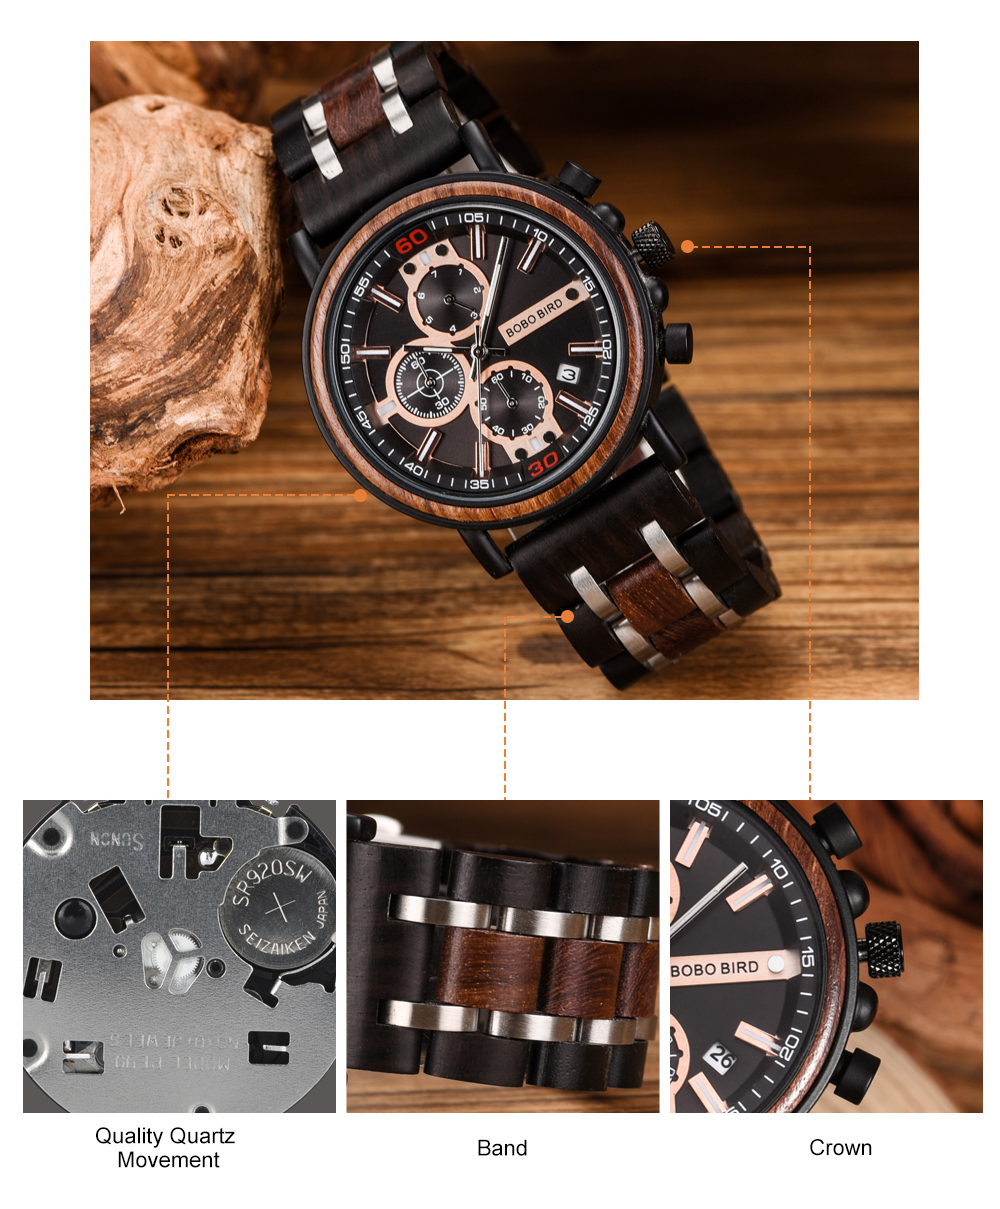 H1cee153b14ab42809f09298b0c7cb0bft BOBO BIRD New Wooden Watch Men Top Brand